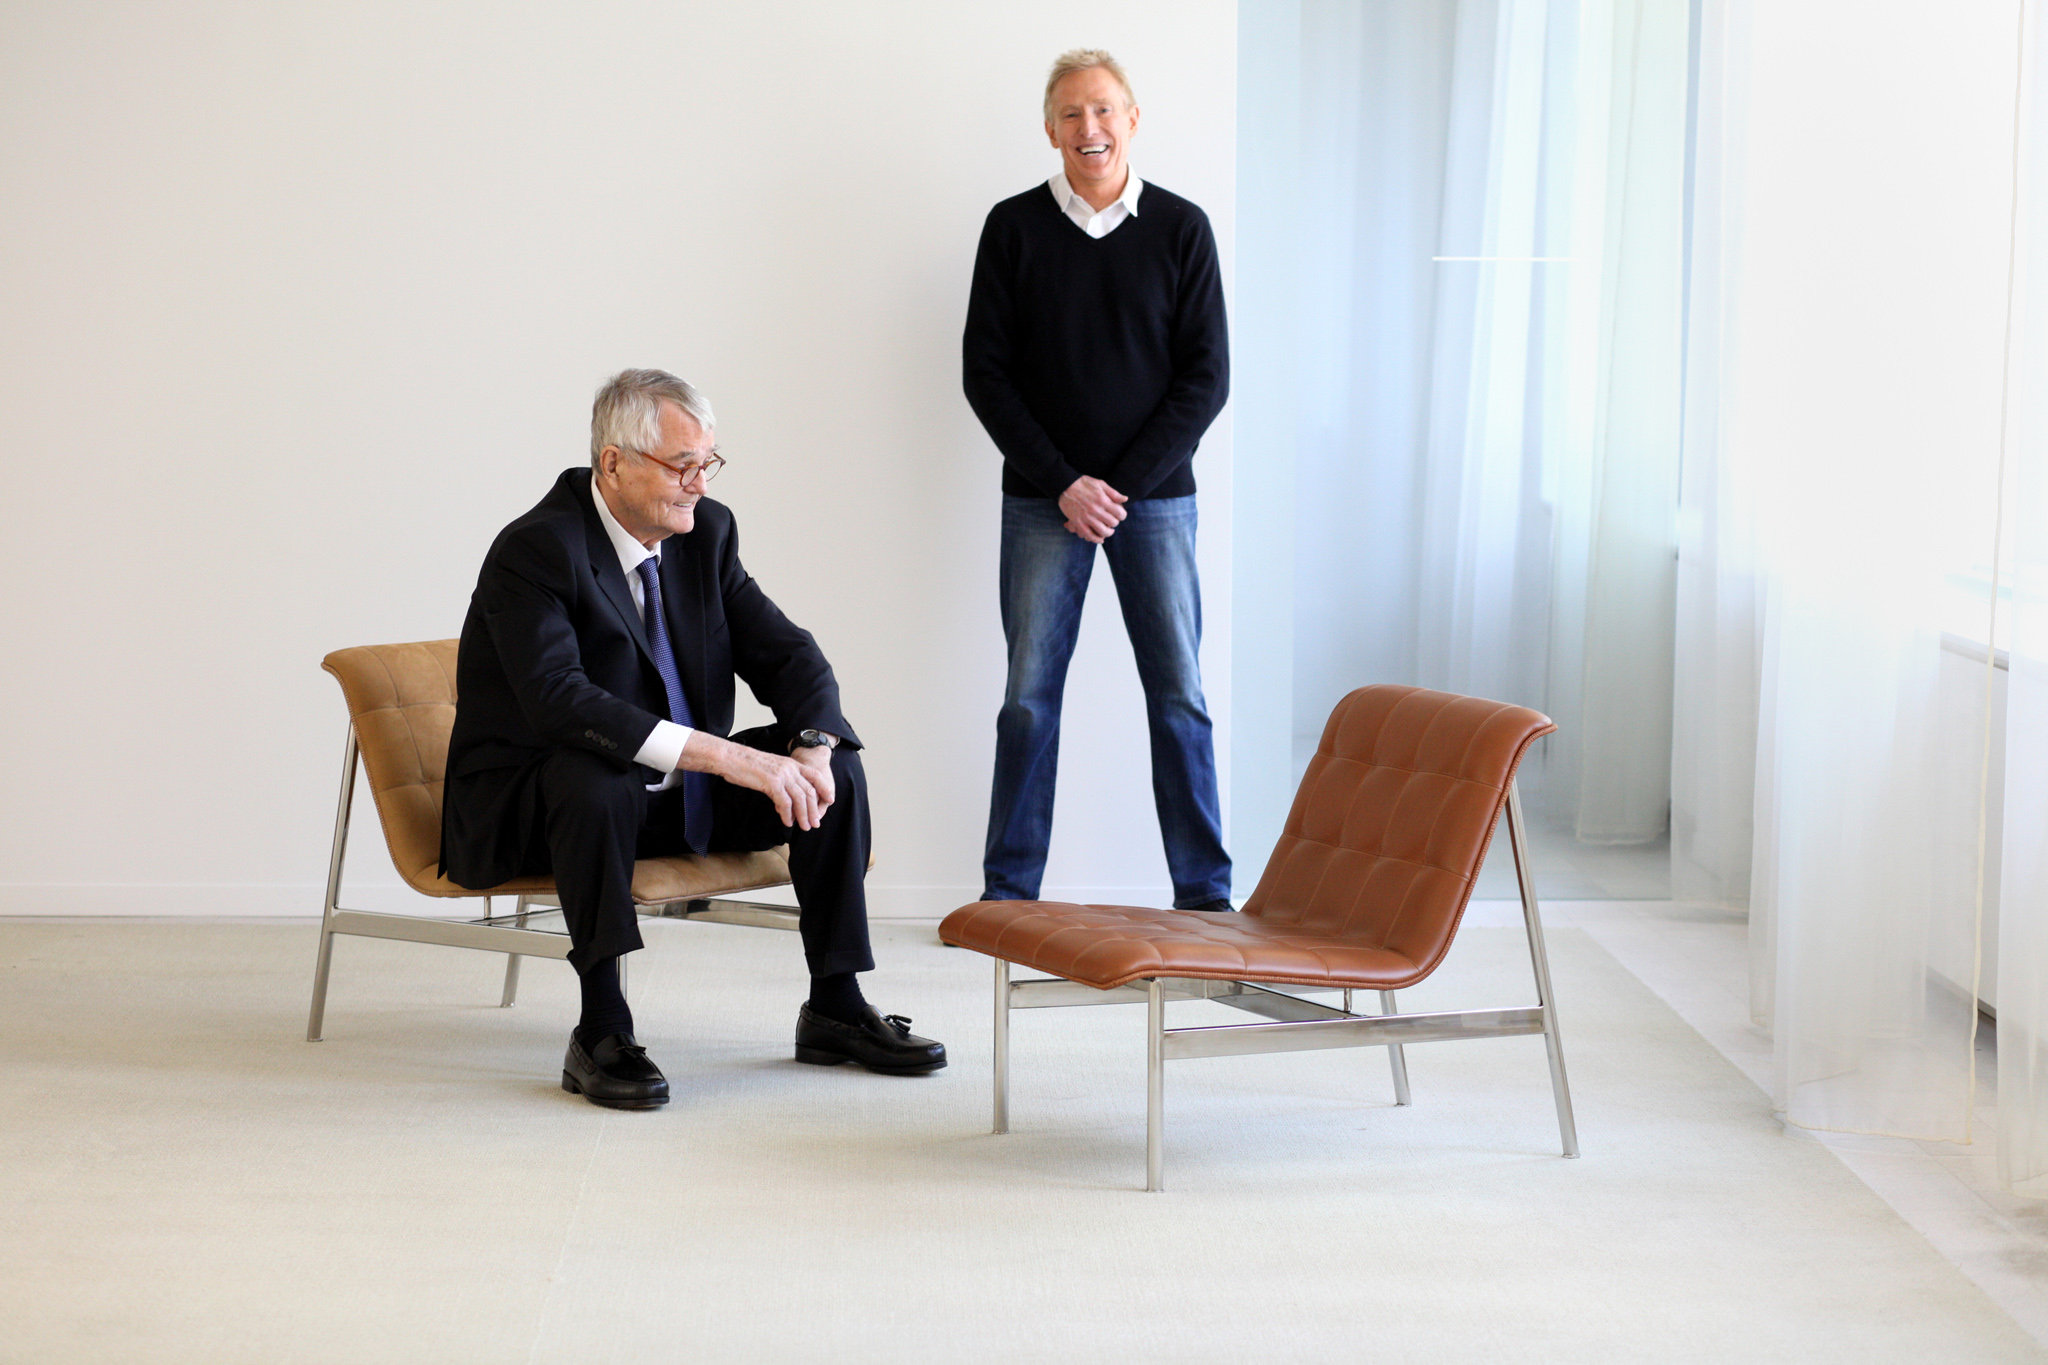 chair designer charles high chairs reviews talking with pollock furniture  q anda